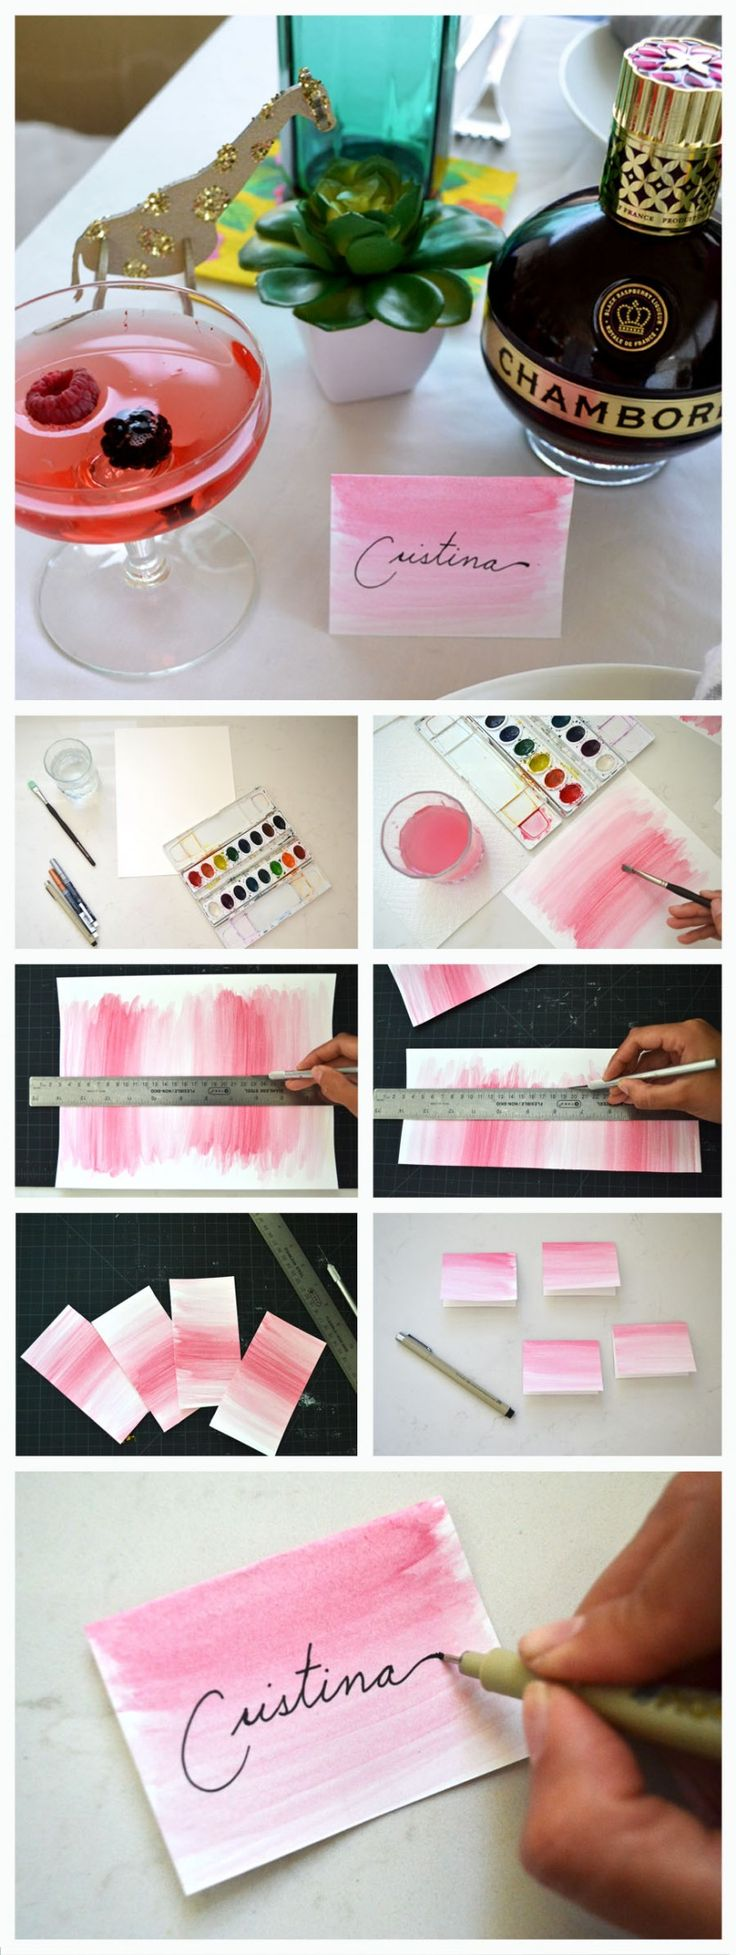 Best 25+ Name cards ideas on Pinterest